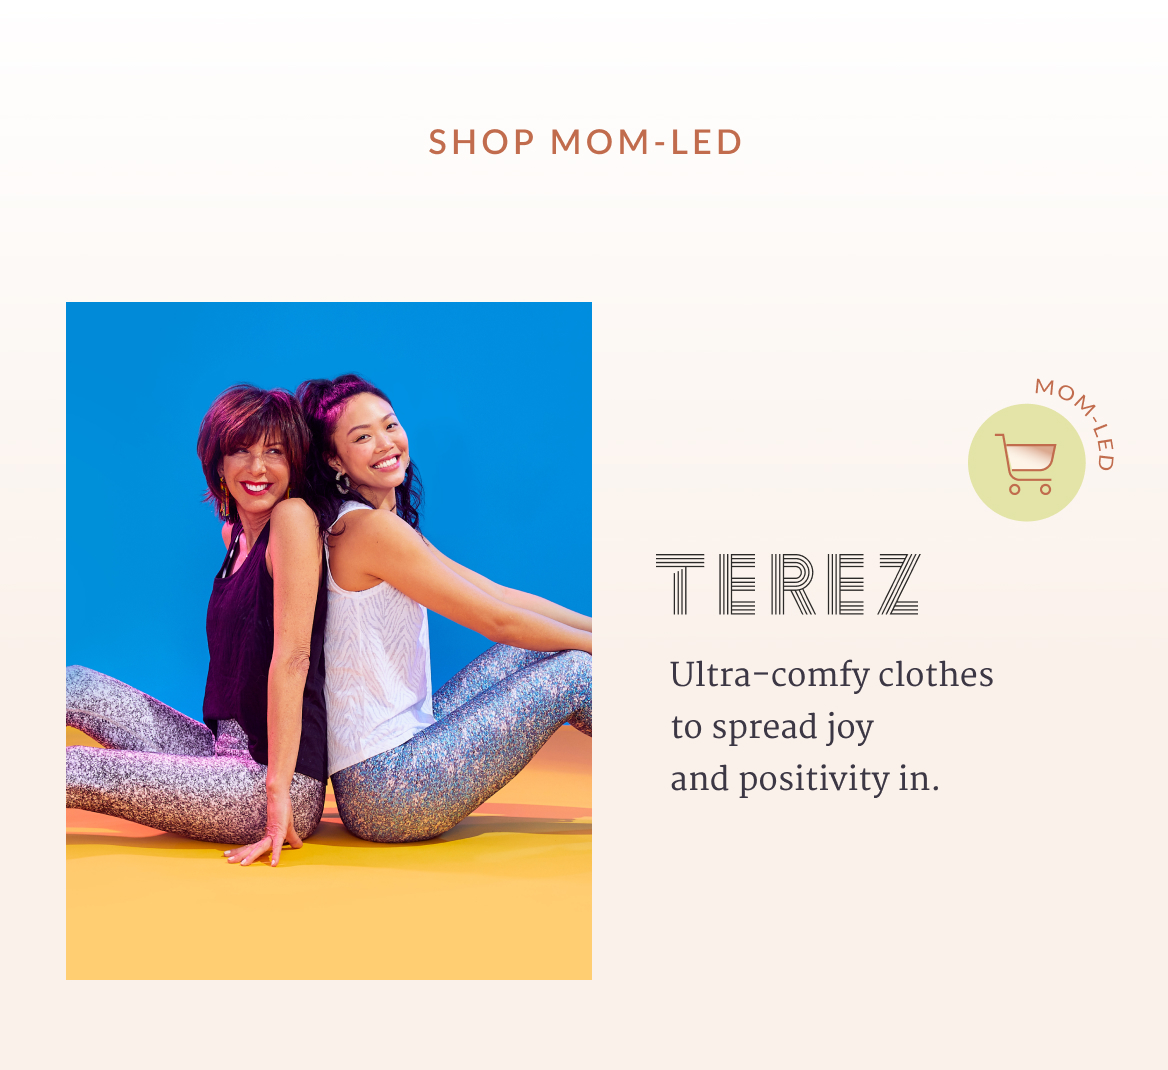 Ultra-comfy clothes to spread joy and positivity in. Two women smiling and sitting back-to-back on the floor.